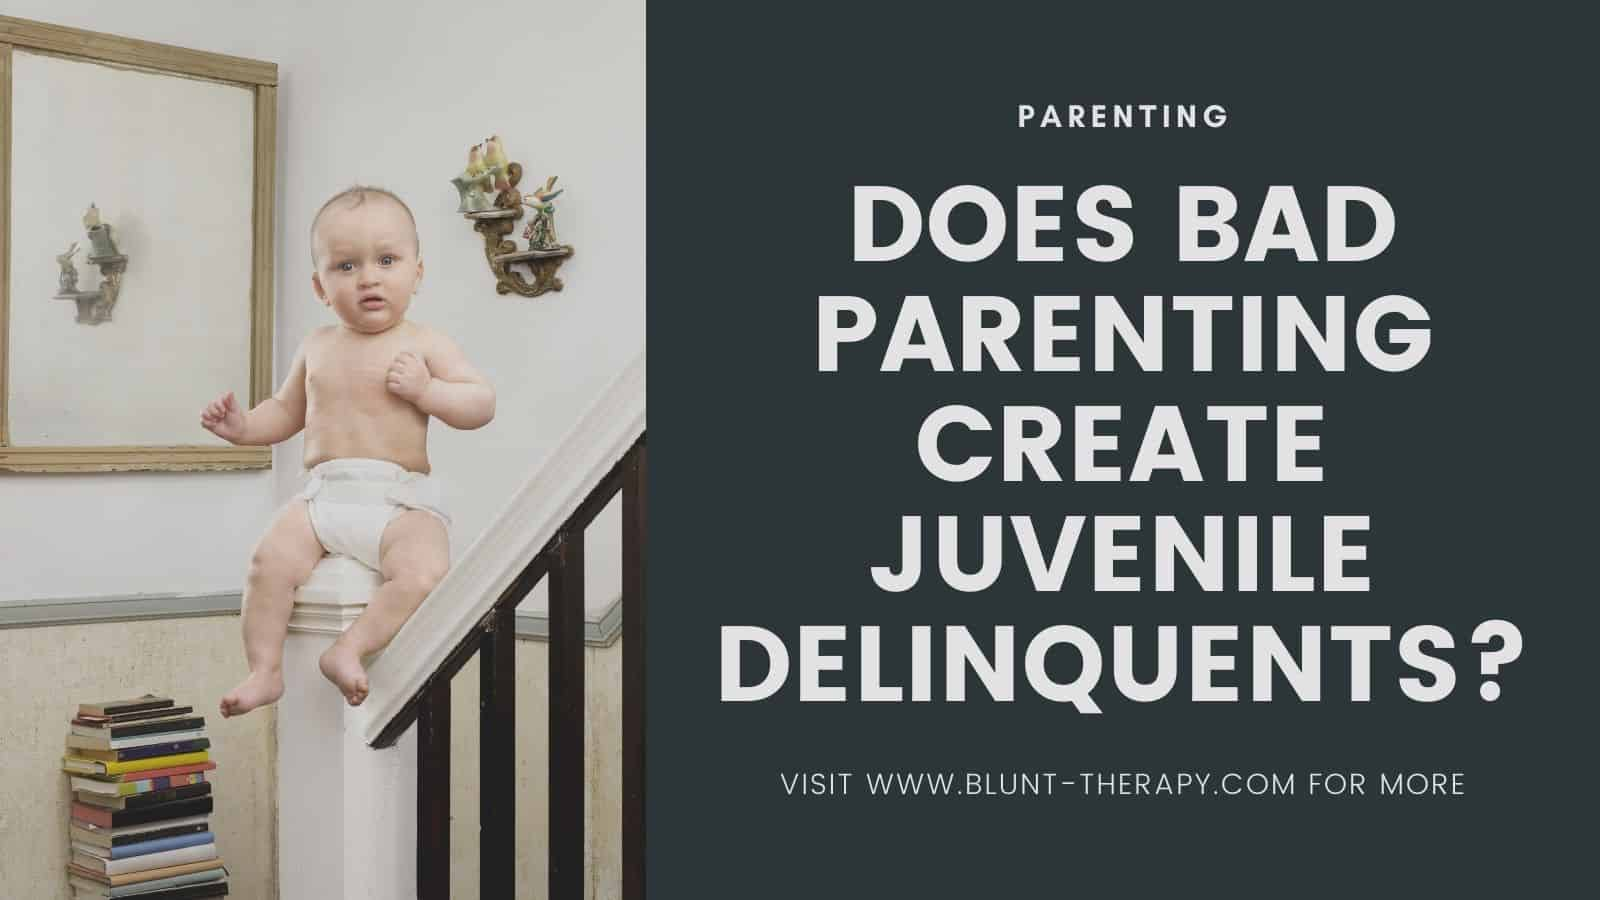 Does Bad Parenting Create Juvenile Delinquents